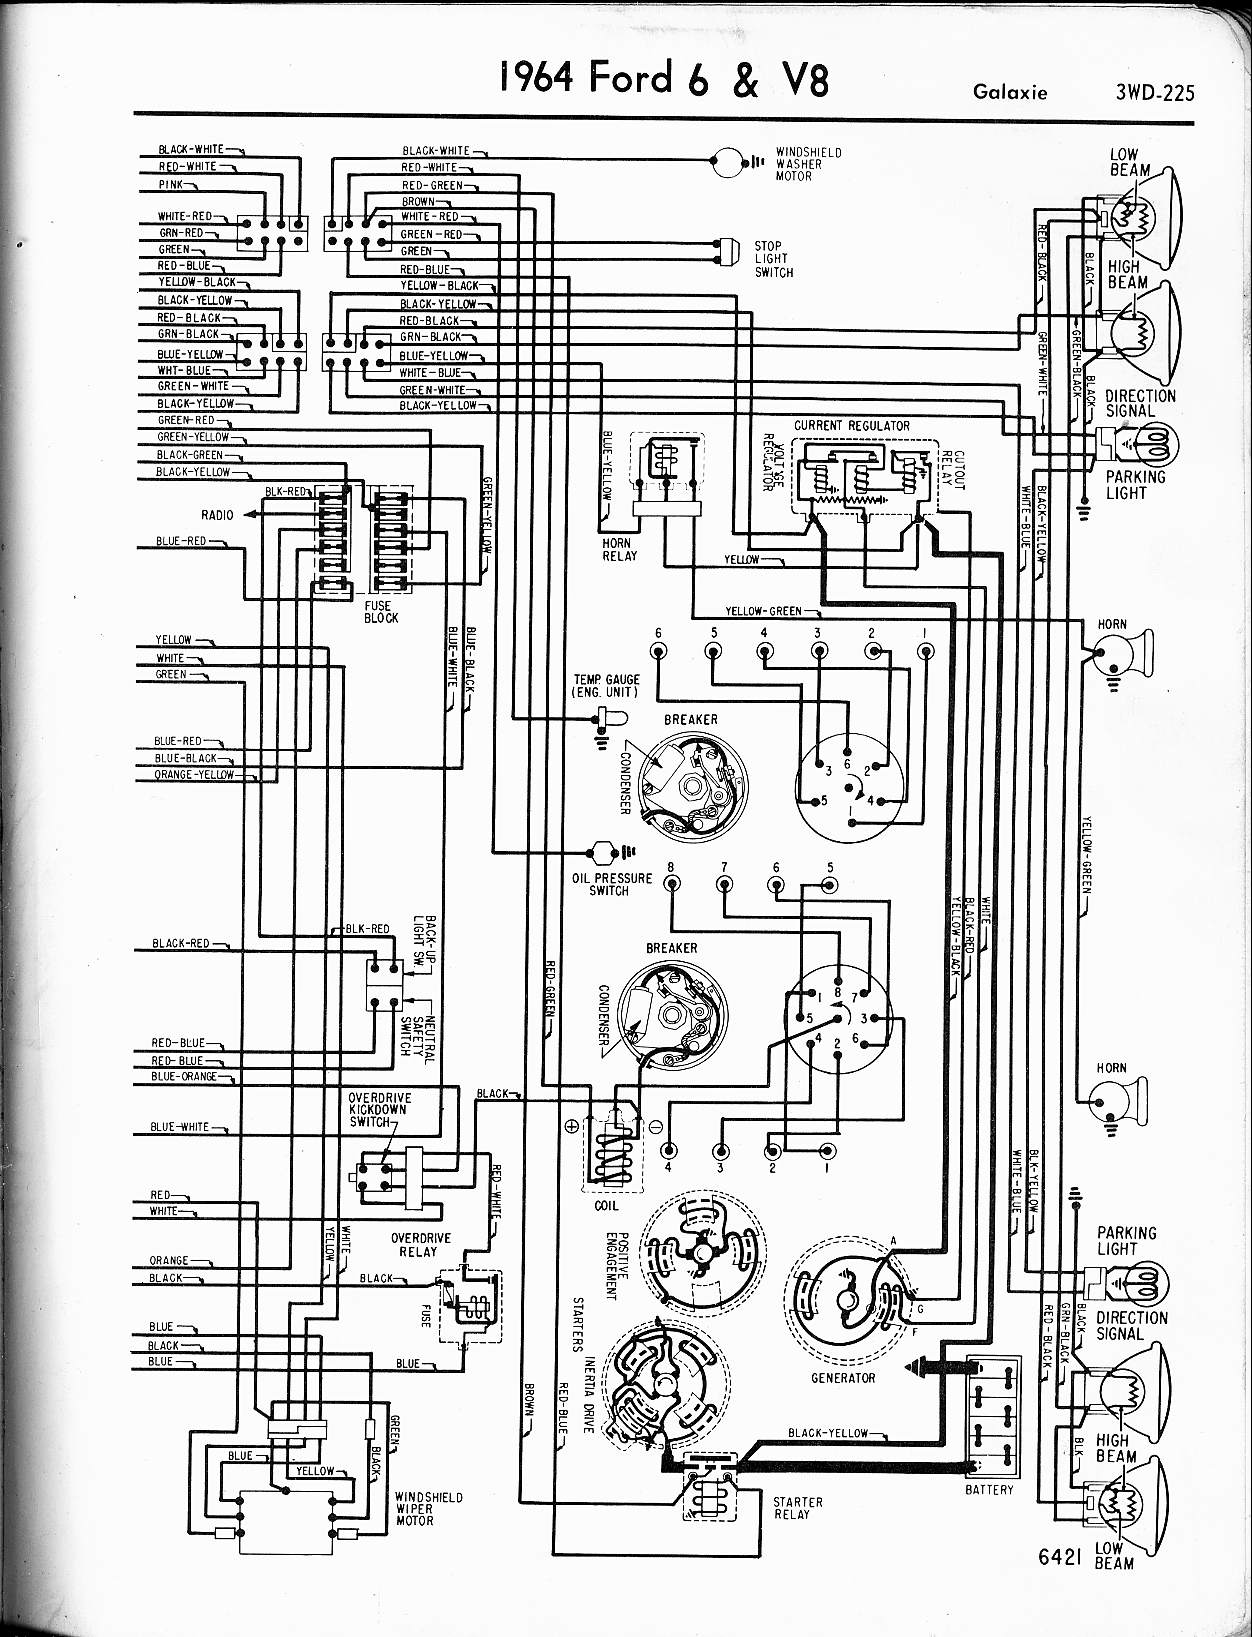 MWire5765 225 64 2 speed wiper motor wiring ford muscle forums ford muscle wiper motor wiring diagram for 1965 gto at mifinder.co